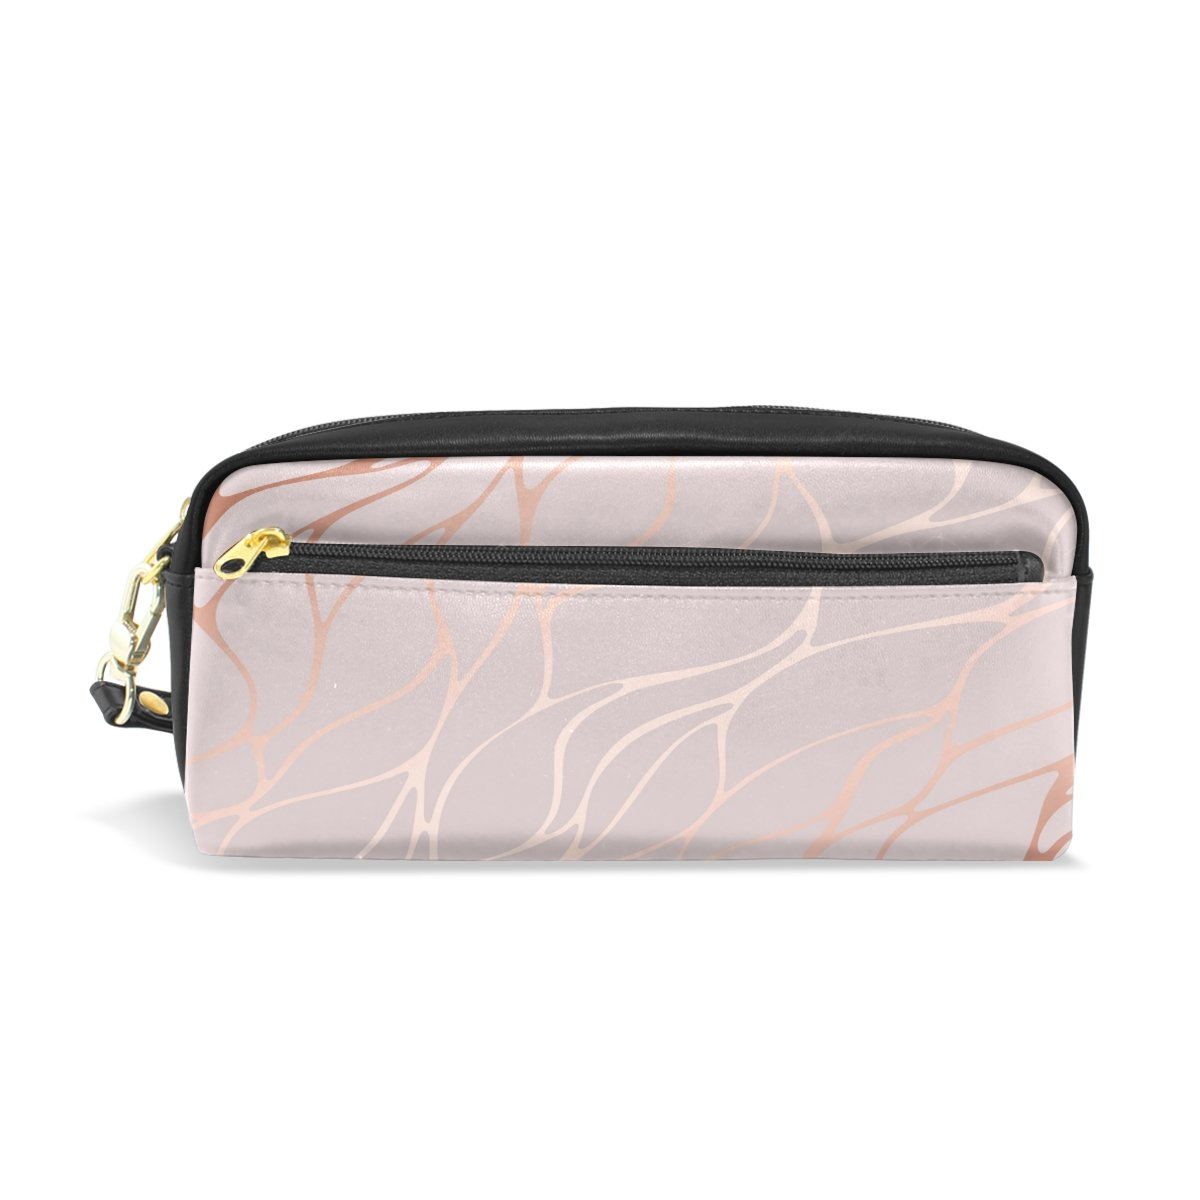 ALAZA Pink Rose Marble Pencil Case Zipper PU Leather Cosmetic Makeup Bag Multifunction Pen Stationery Pouch Bag Large Capacity